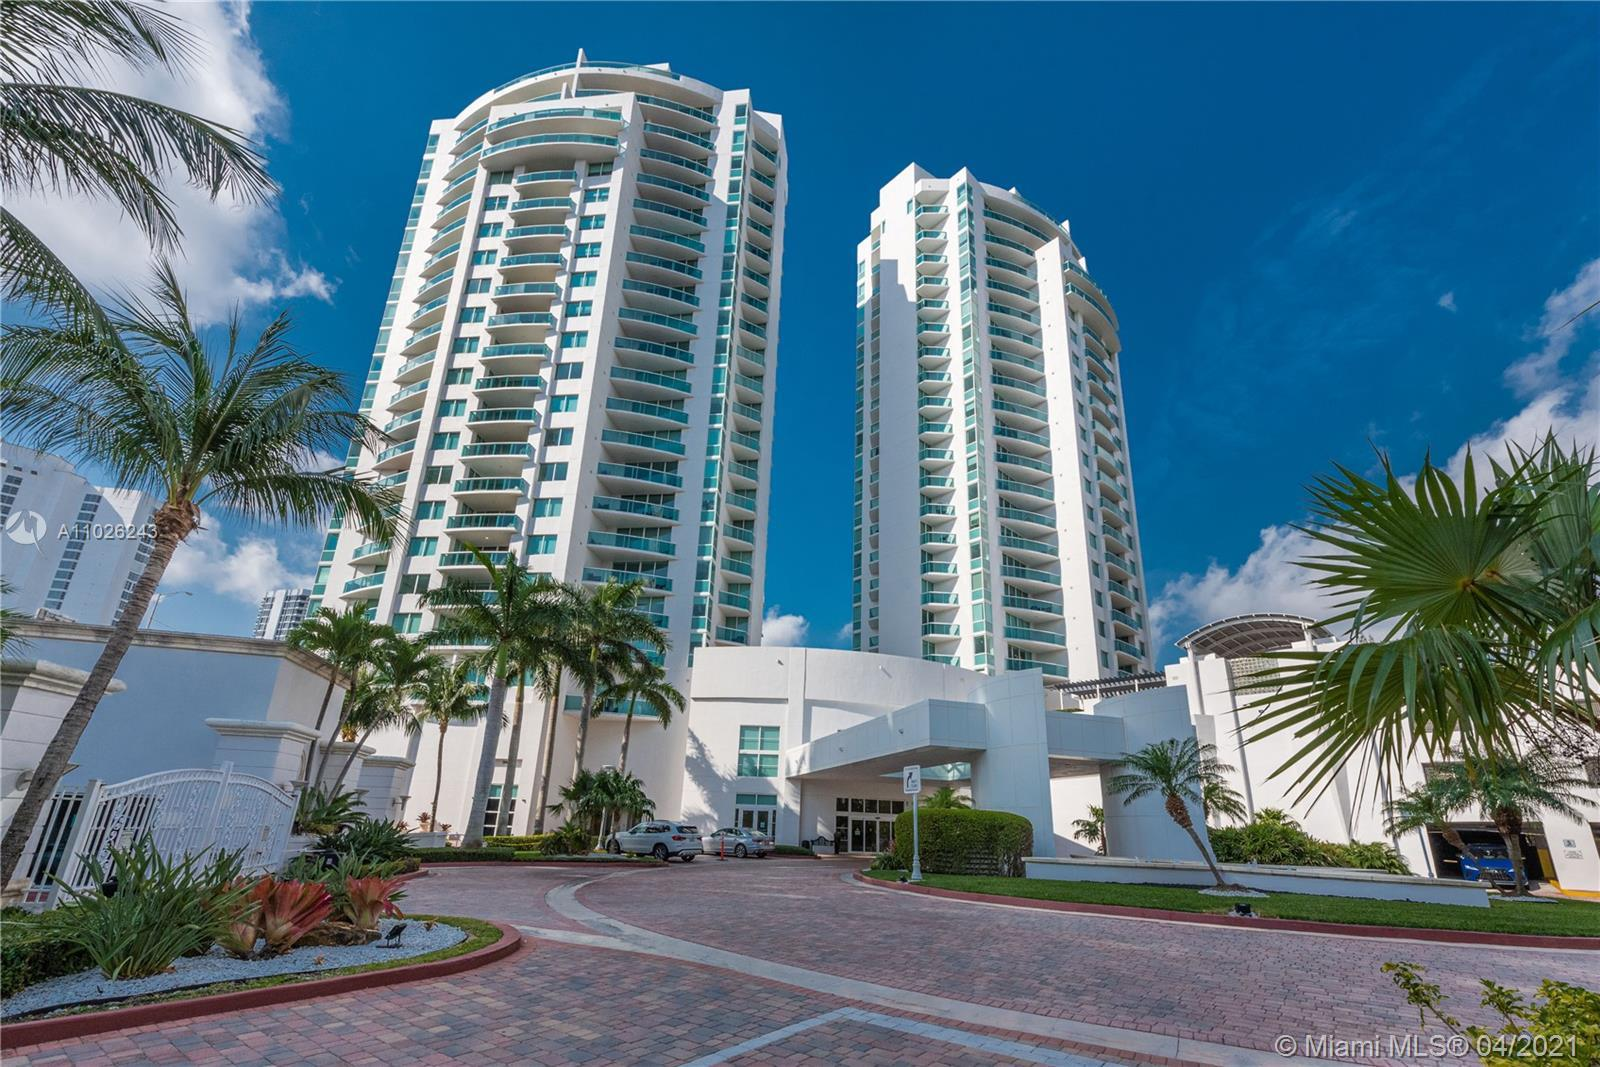 Beautiful Luxury Brand NEW condo, Private Elevator into each apartment. Amazing Ocean View